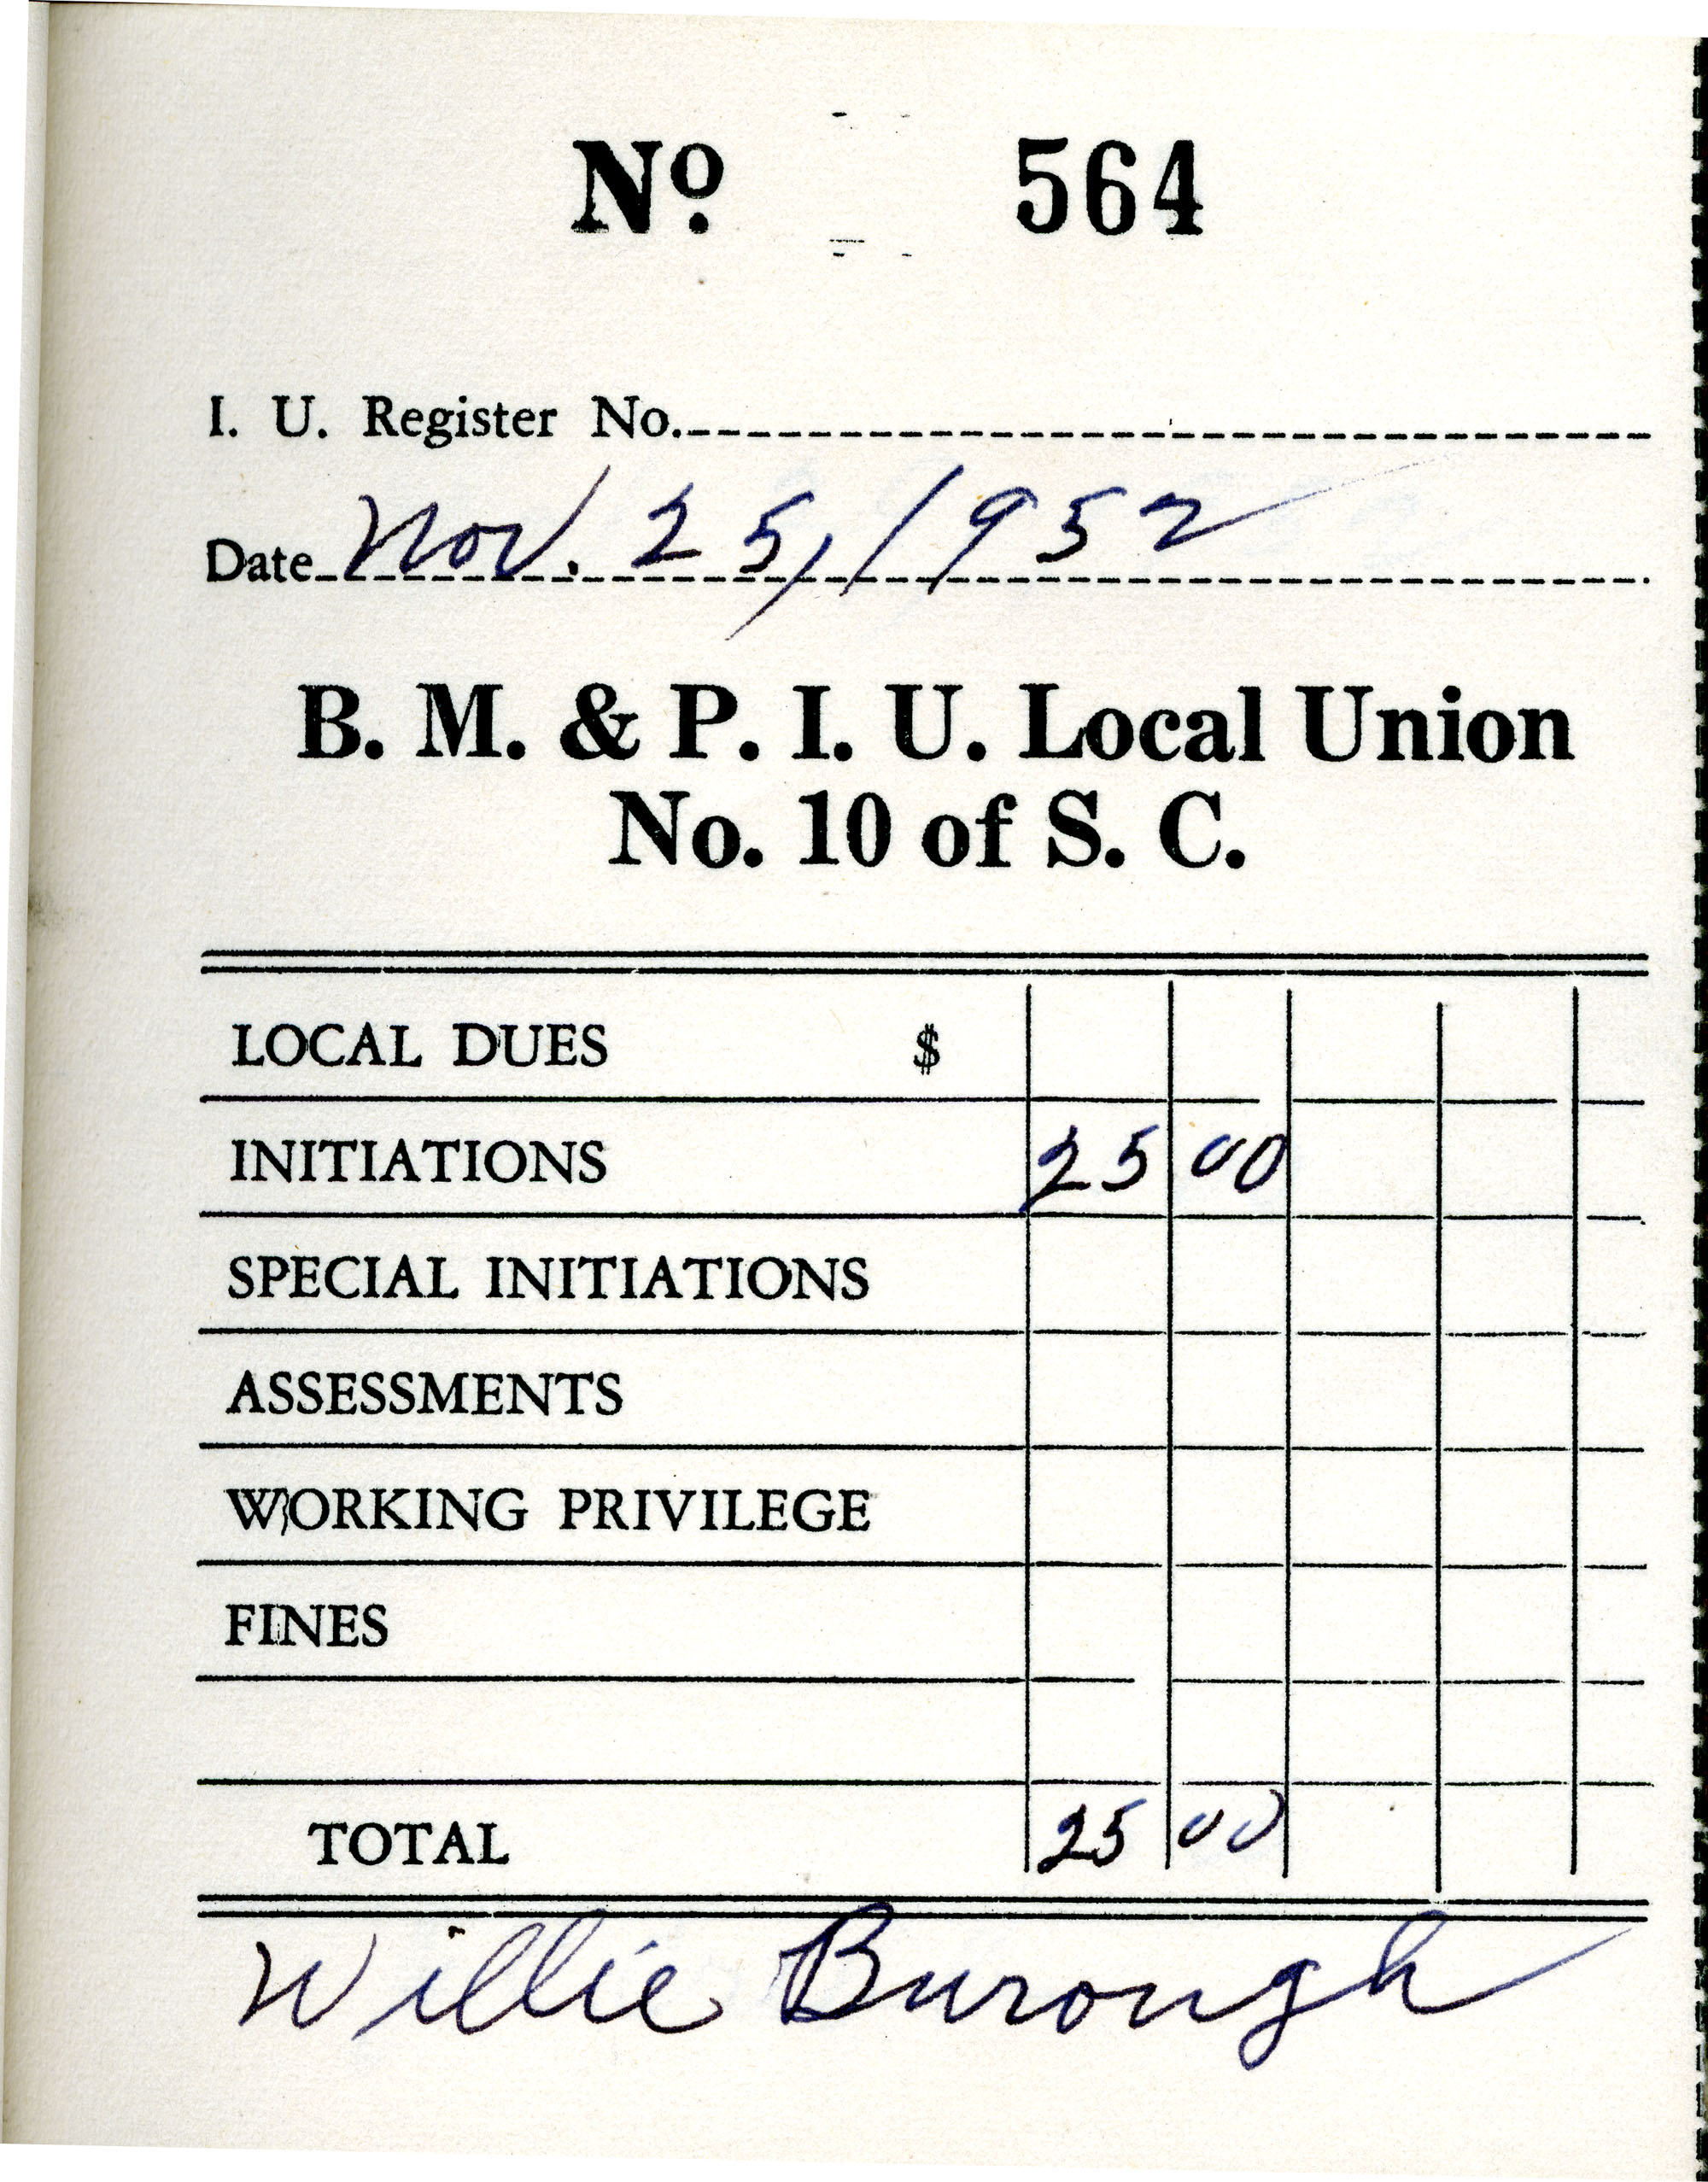 Receipt Book 1, Page 14